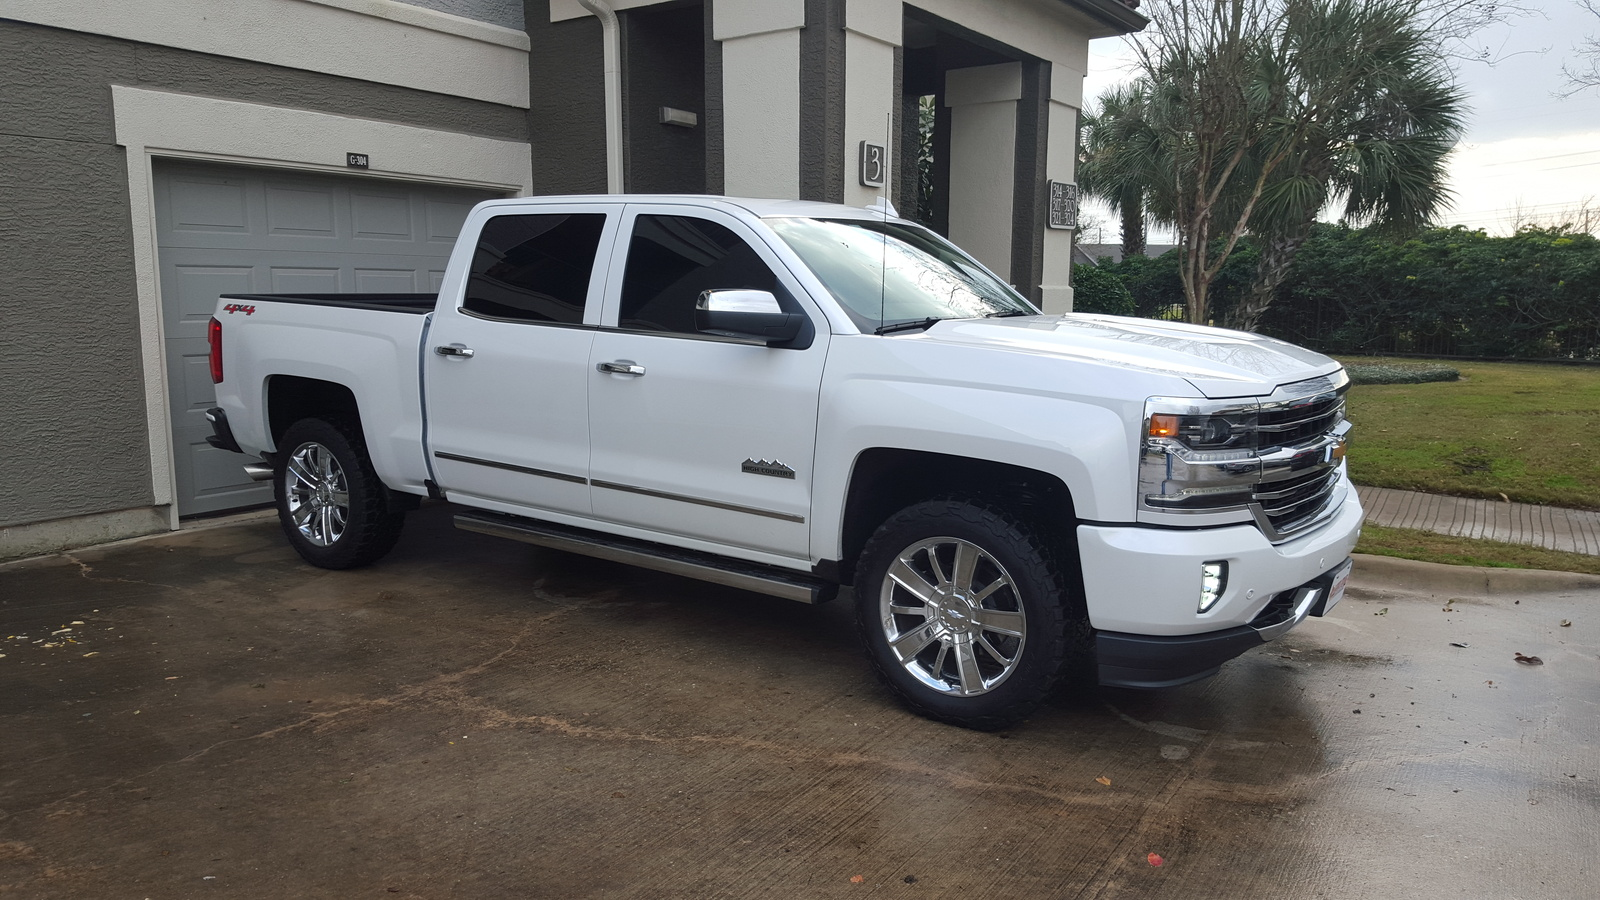 2016 / 2017 Chevrolet Silverado 1500 for Sale in your area - CarGurus